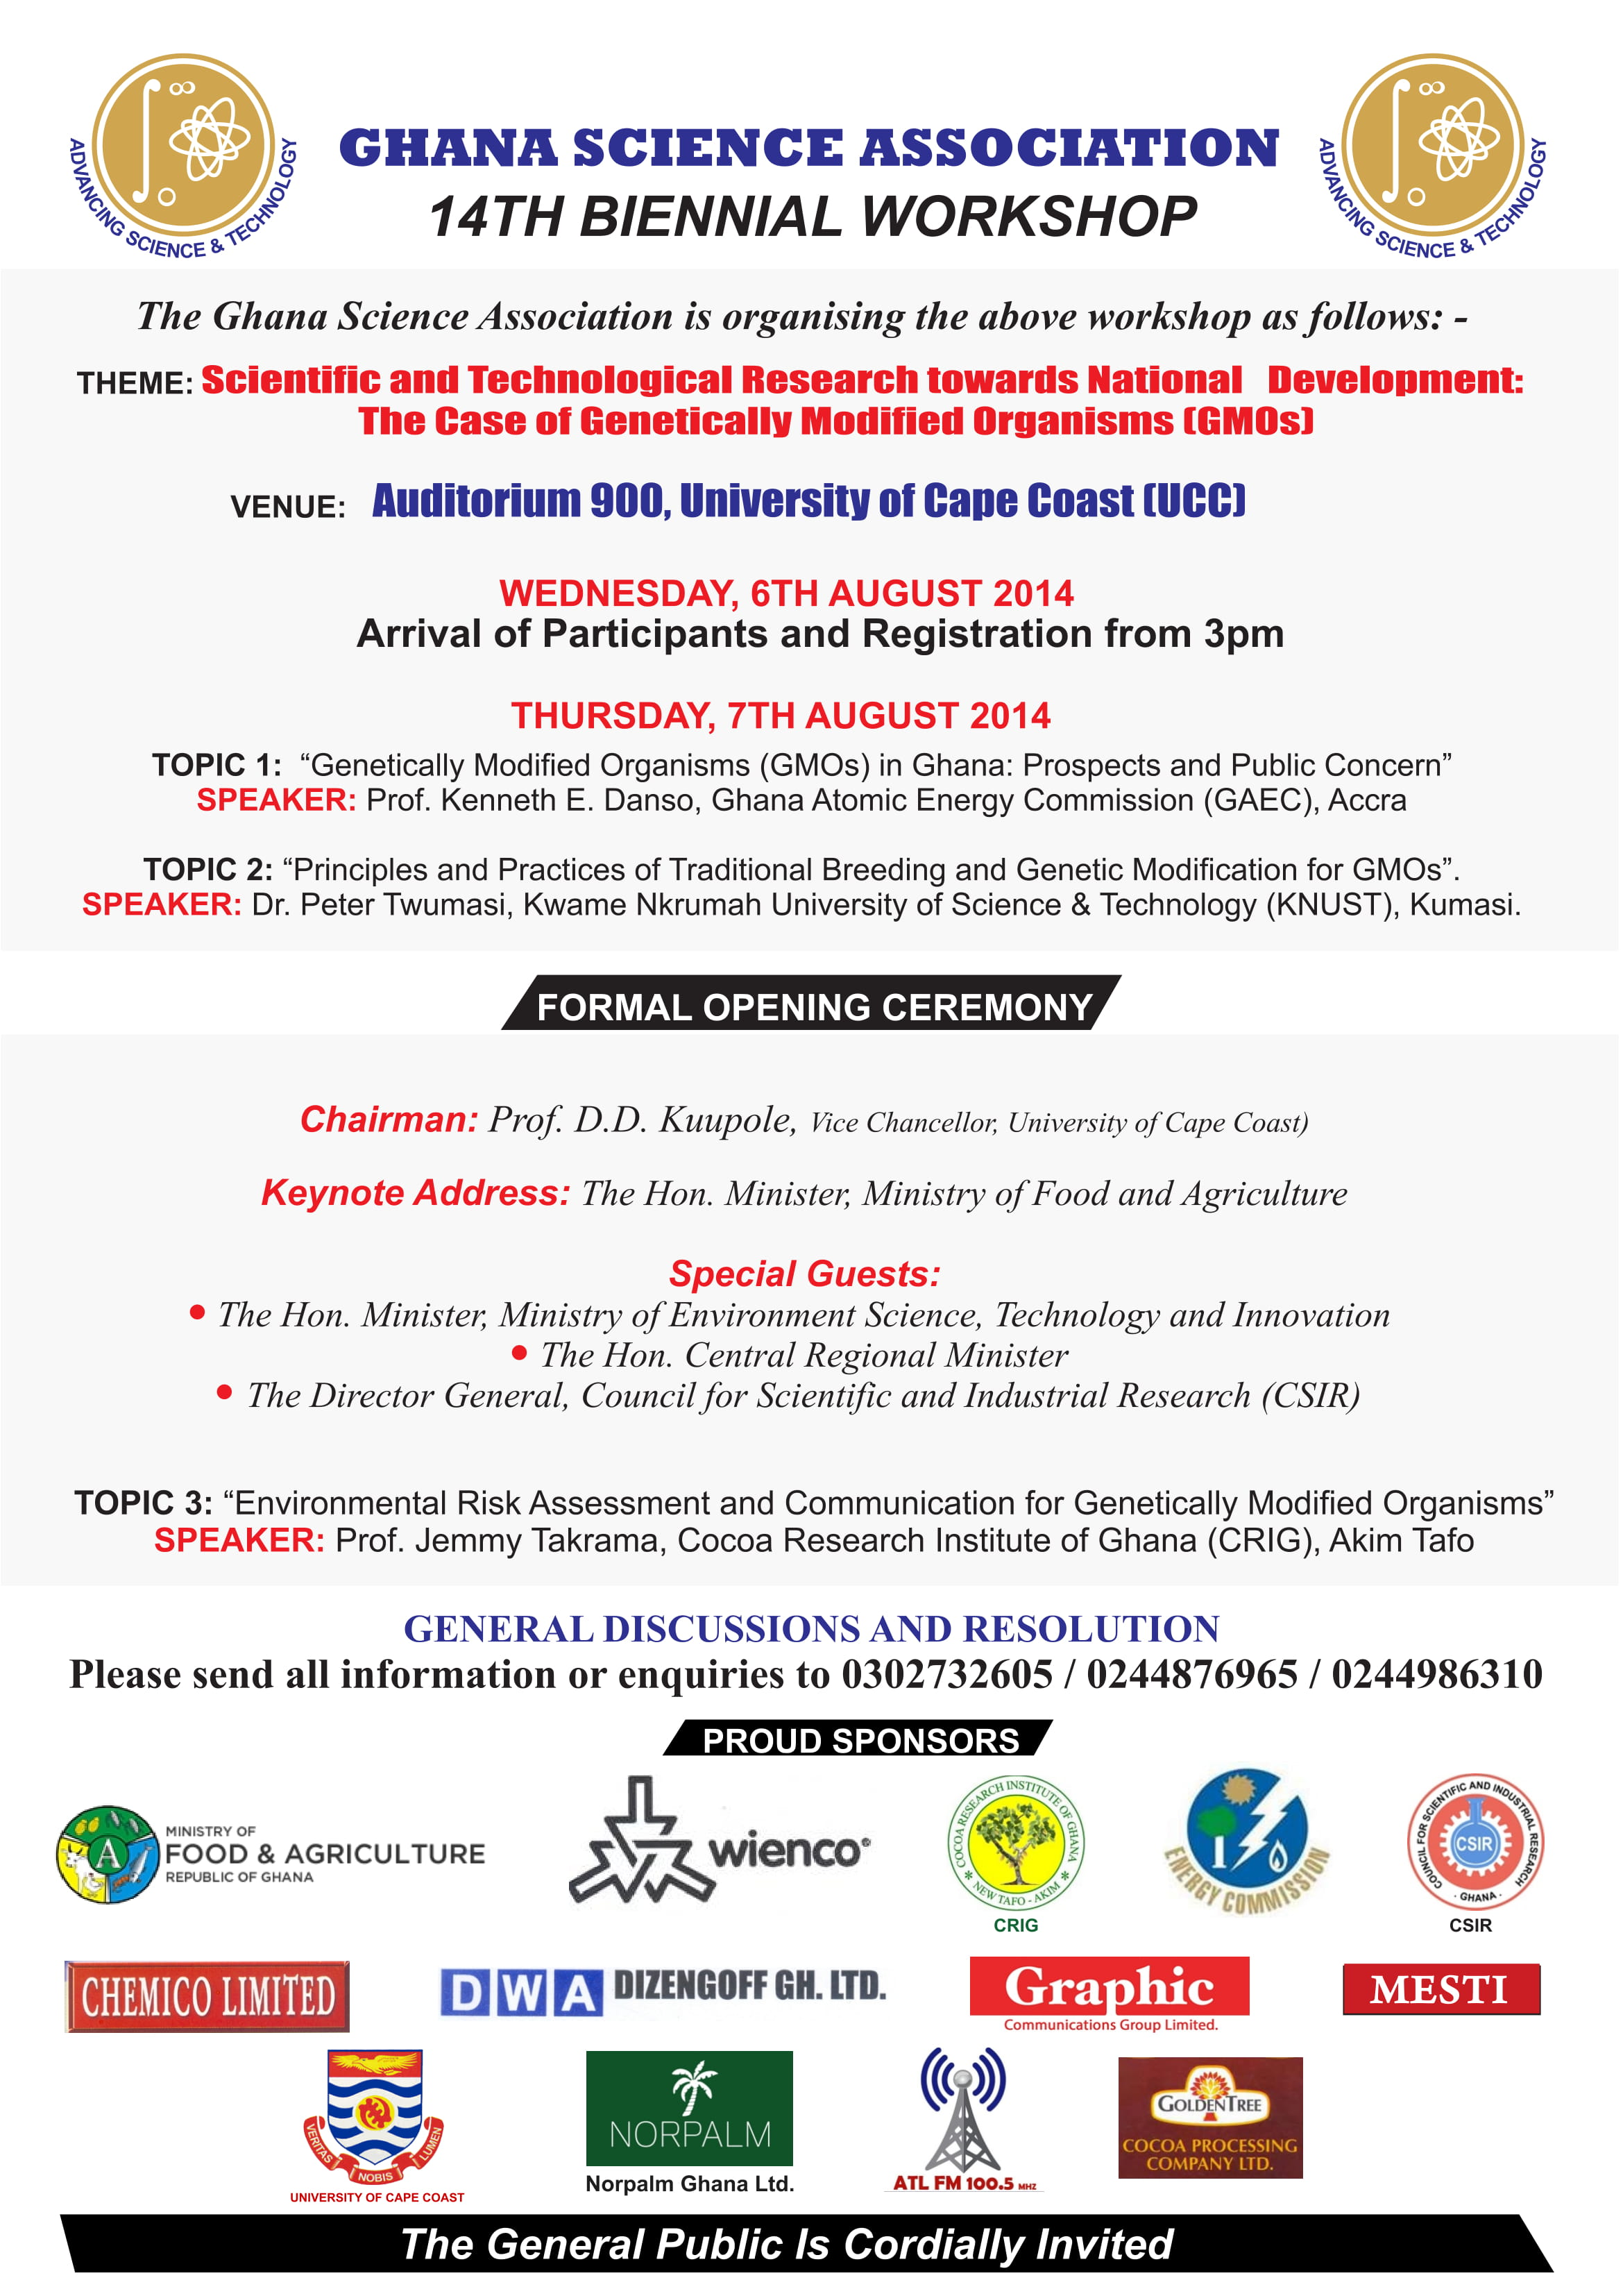 14th Biennial Workshop : Scientific and Technological Research Towards National Development: The Case of Genetically Modified Organisms (GMOs)